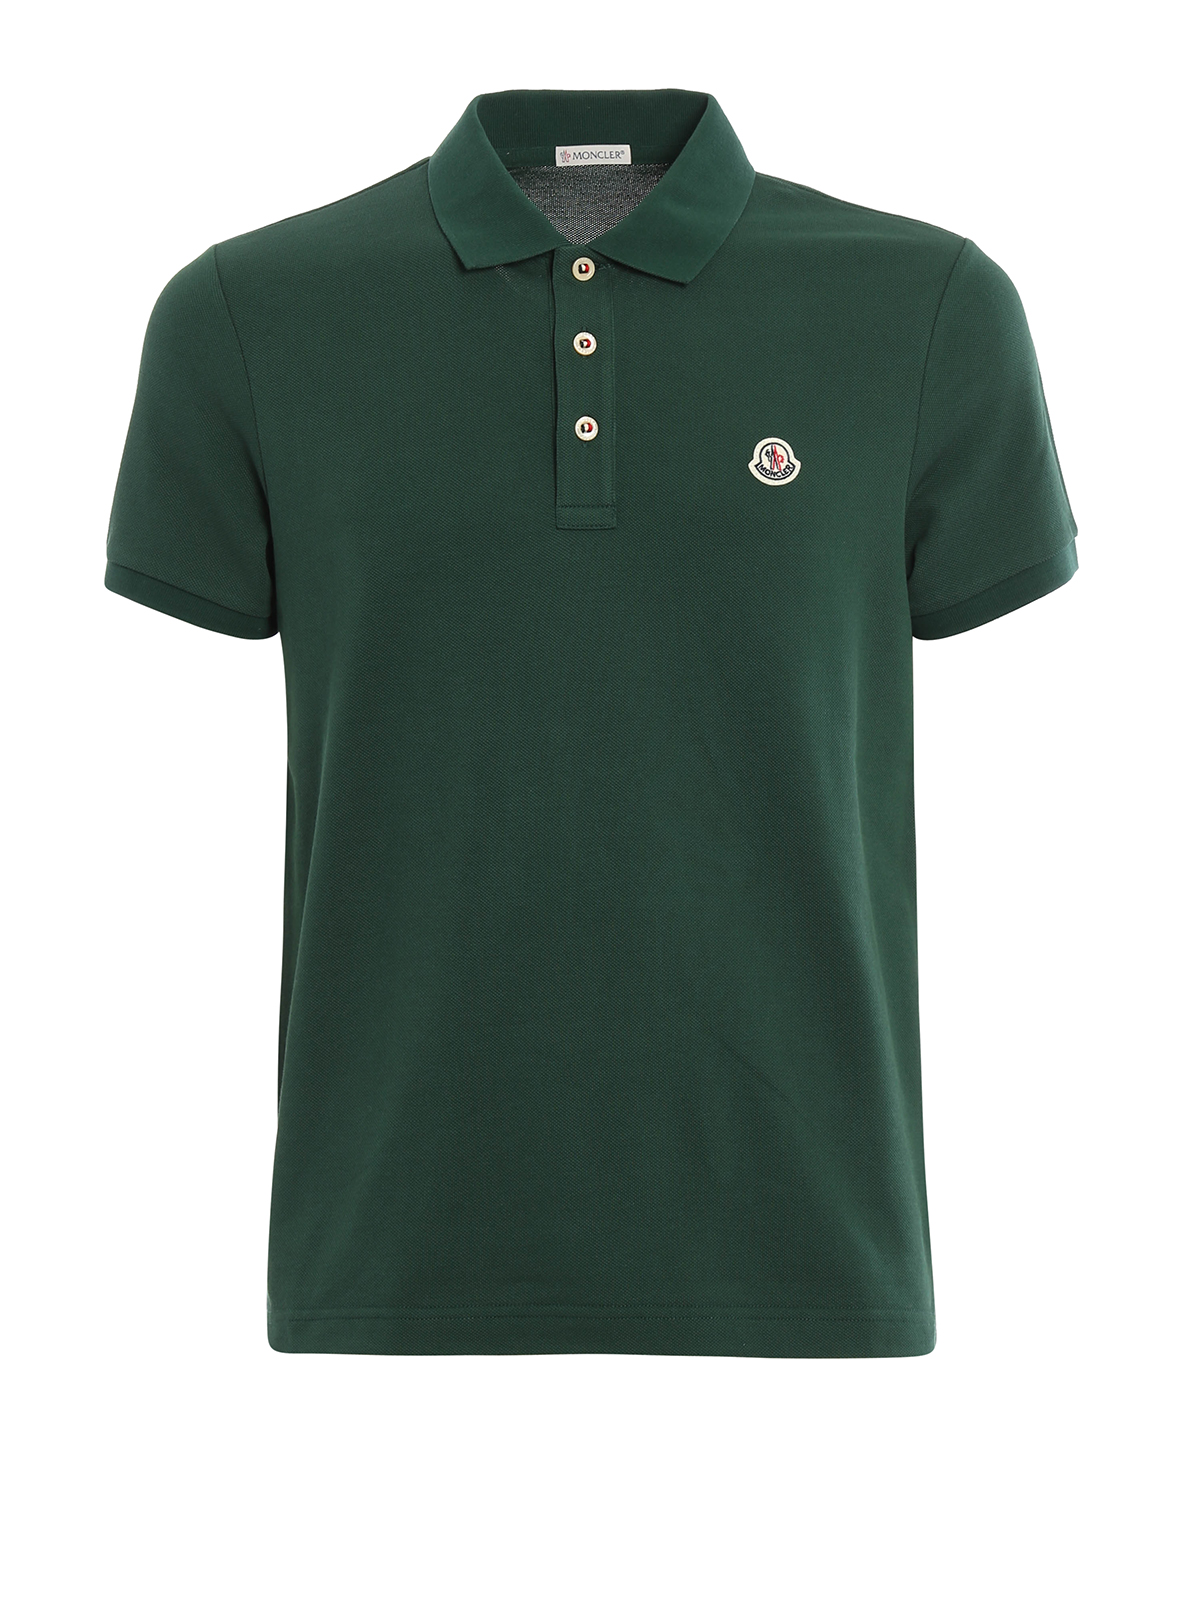 plain cotton pique polo shirt by moncler polo shirts ikrix